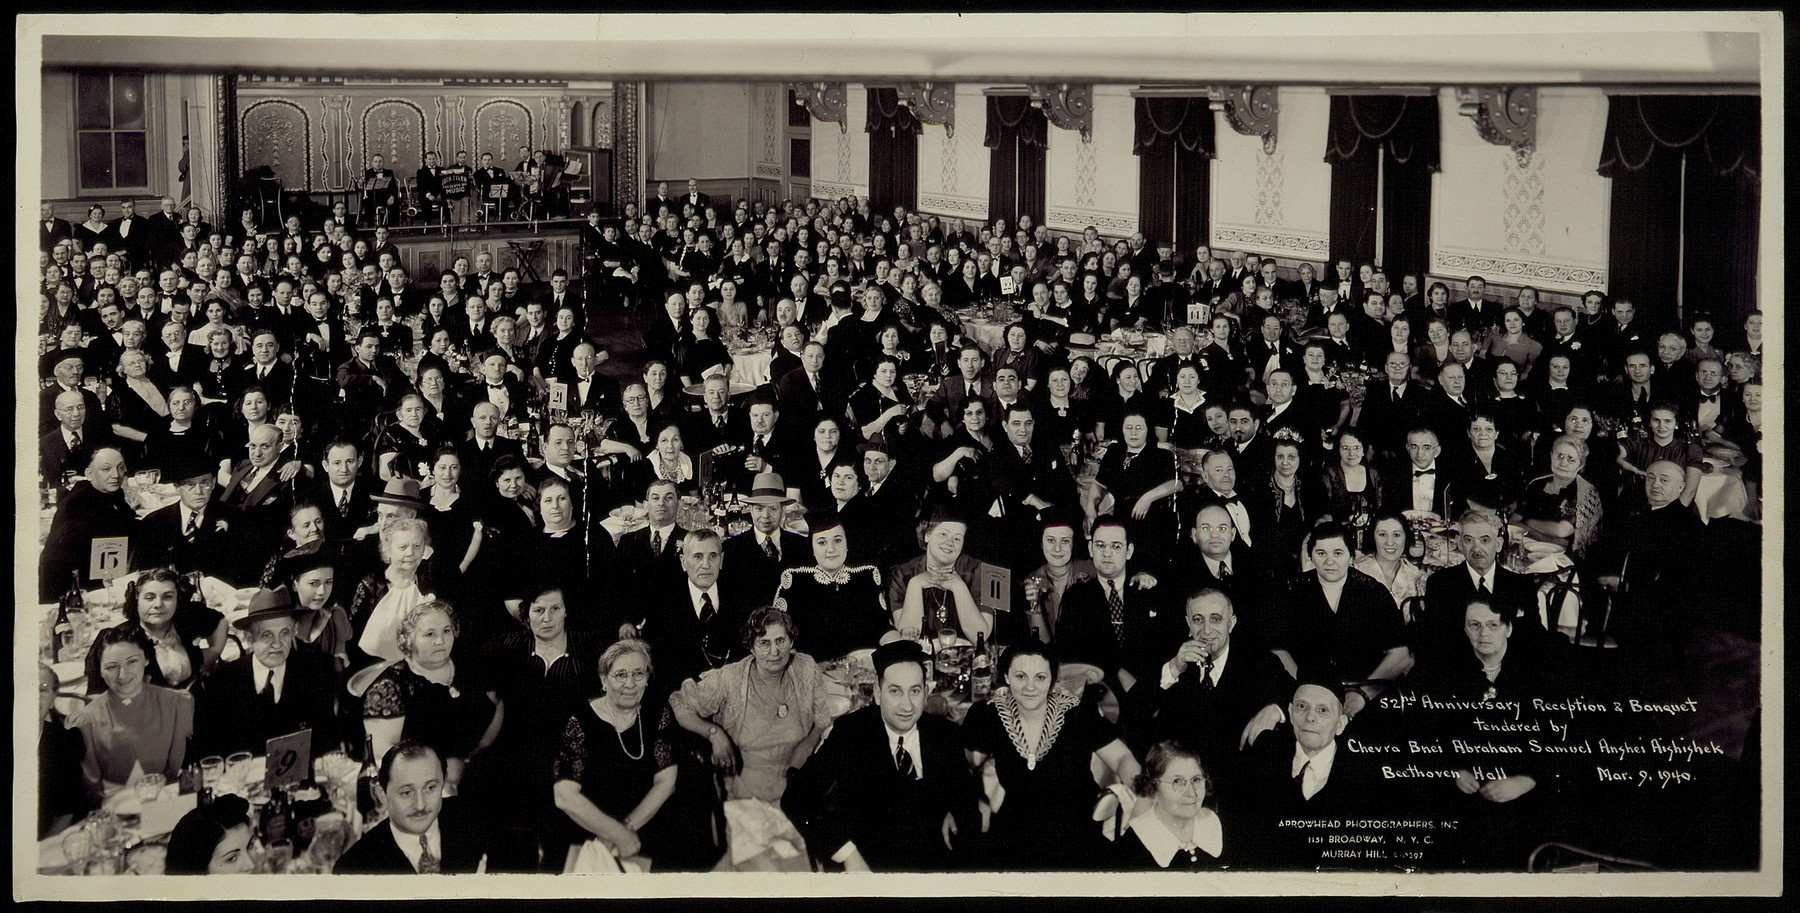 Jewish emigres from Eisiskes gather for a banquet in New York.   More than 1,500 Eishyshkians emigrated to the United States between 1873 and 1940.